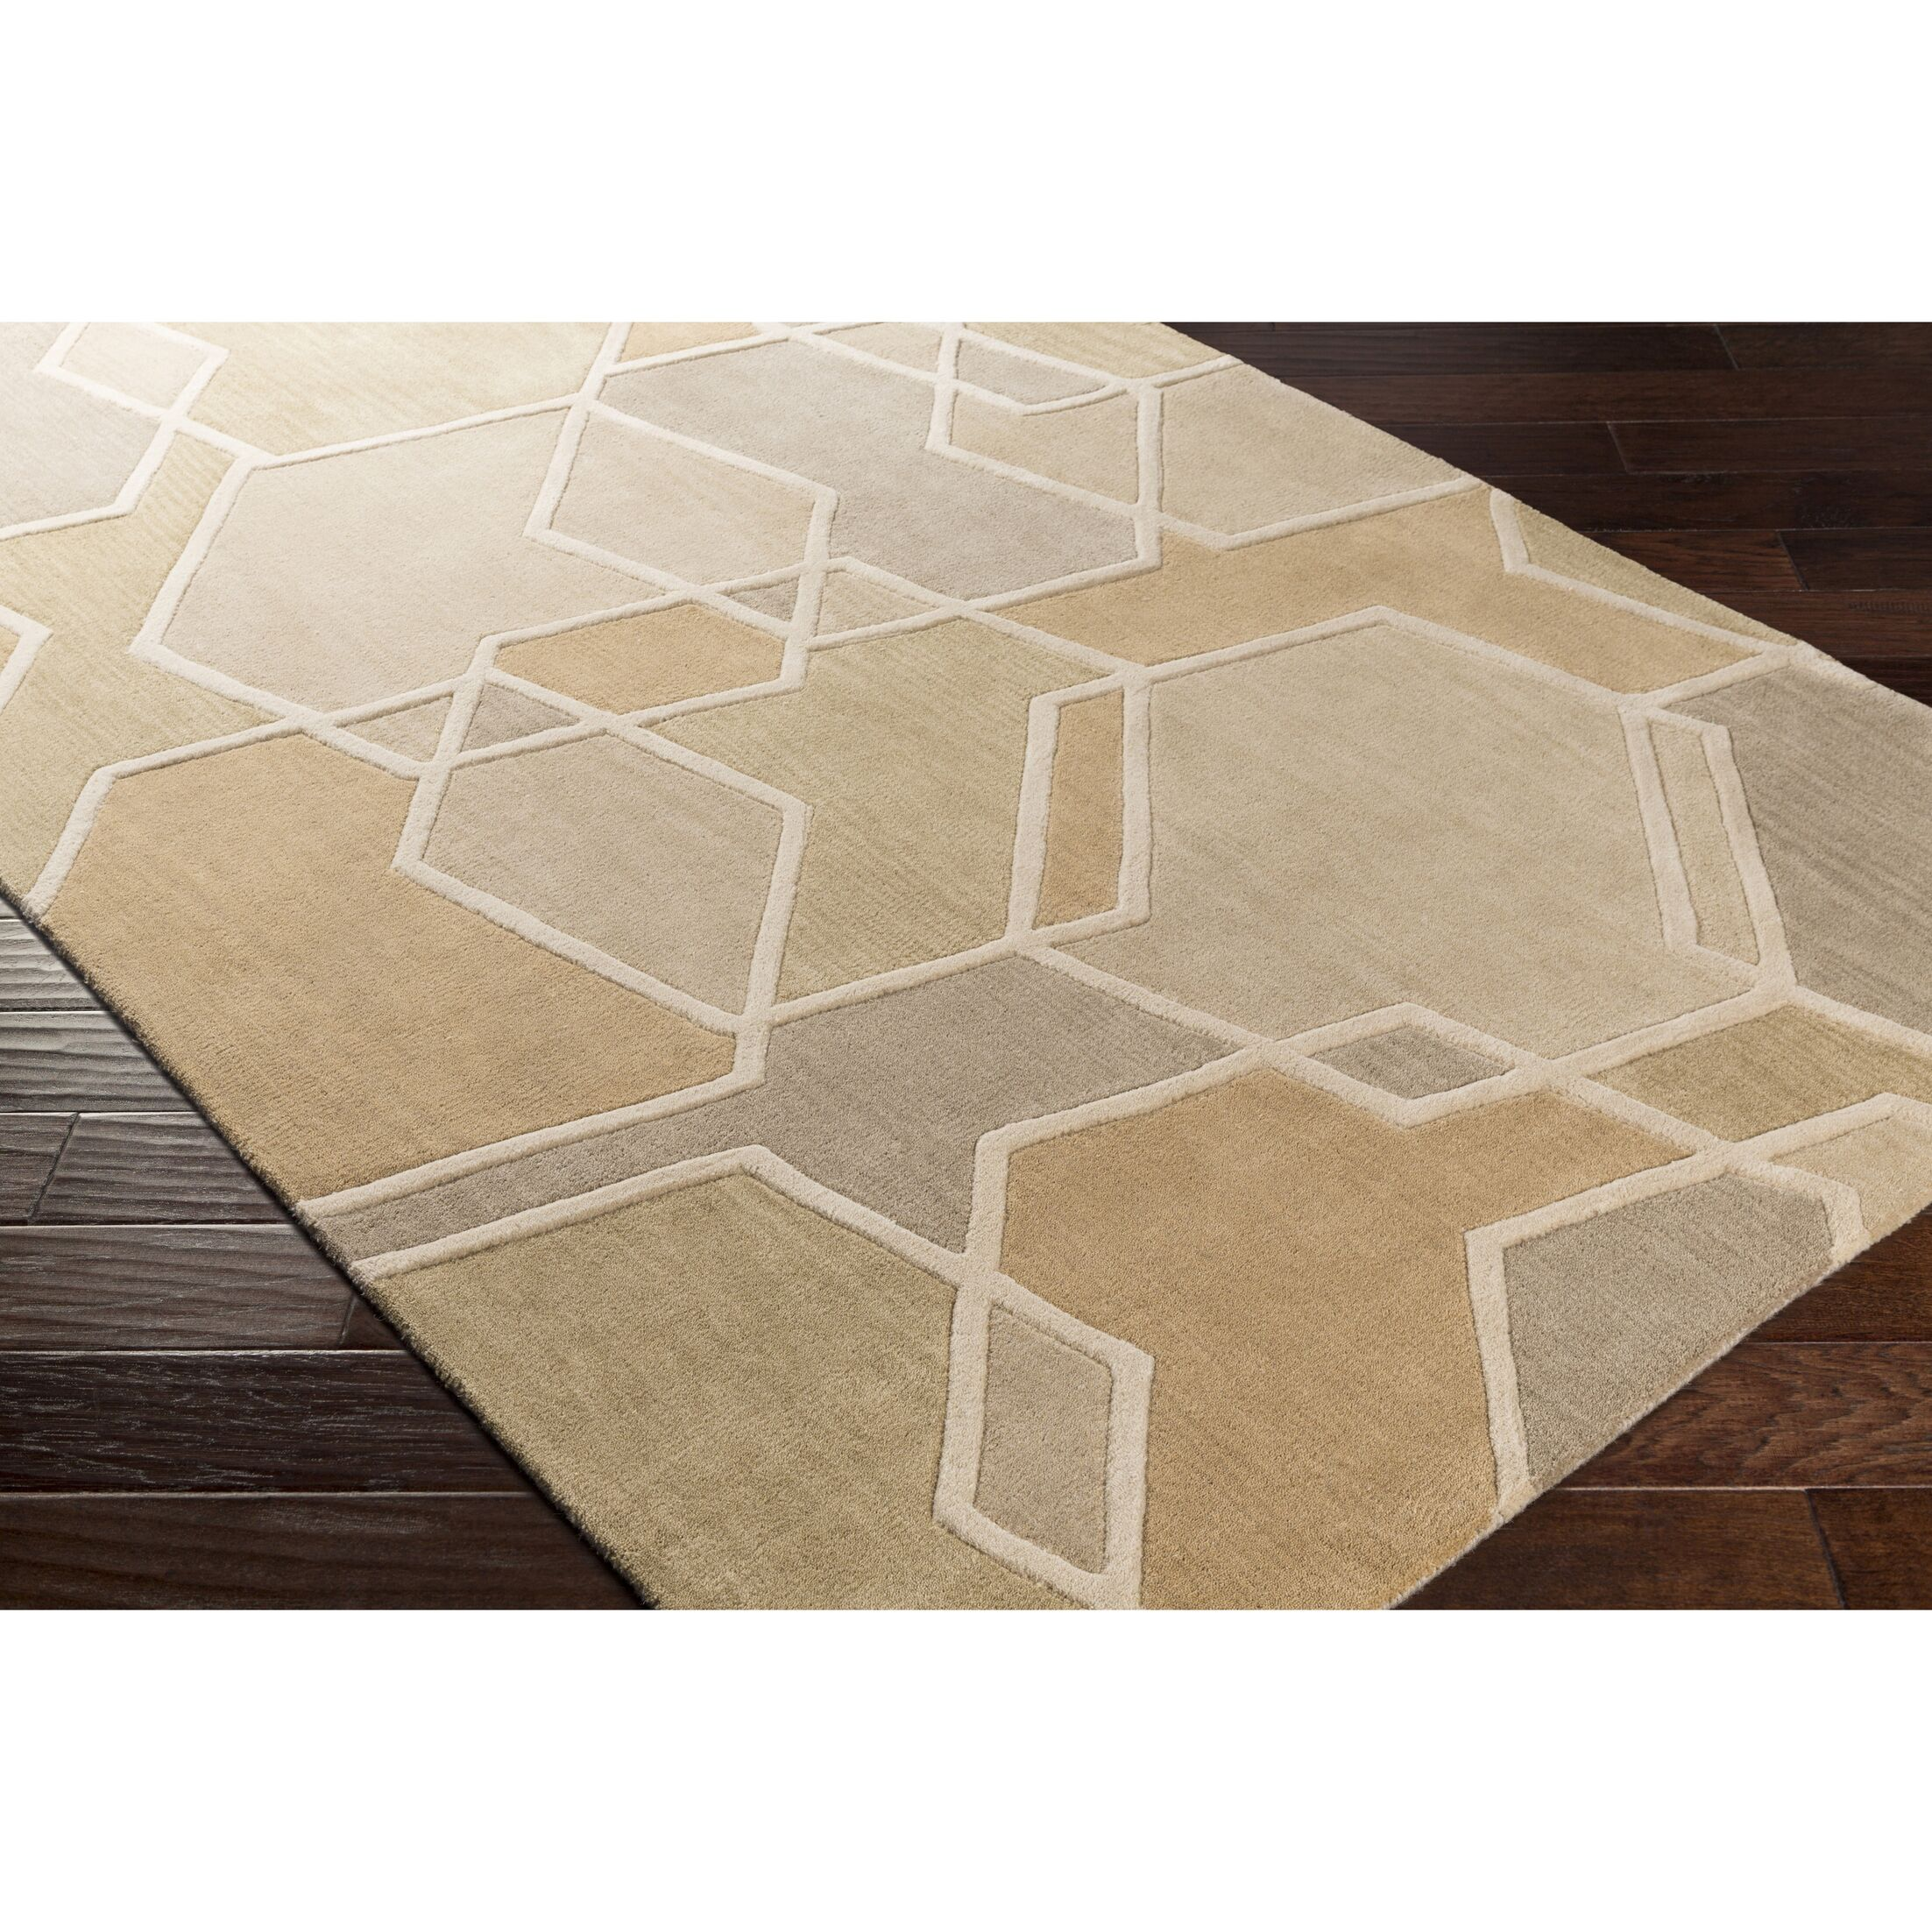 Vaughan Hand-Tufted Green/Brown Area Rug Rug Size: Rectangle 8' x 11'